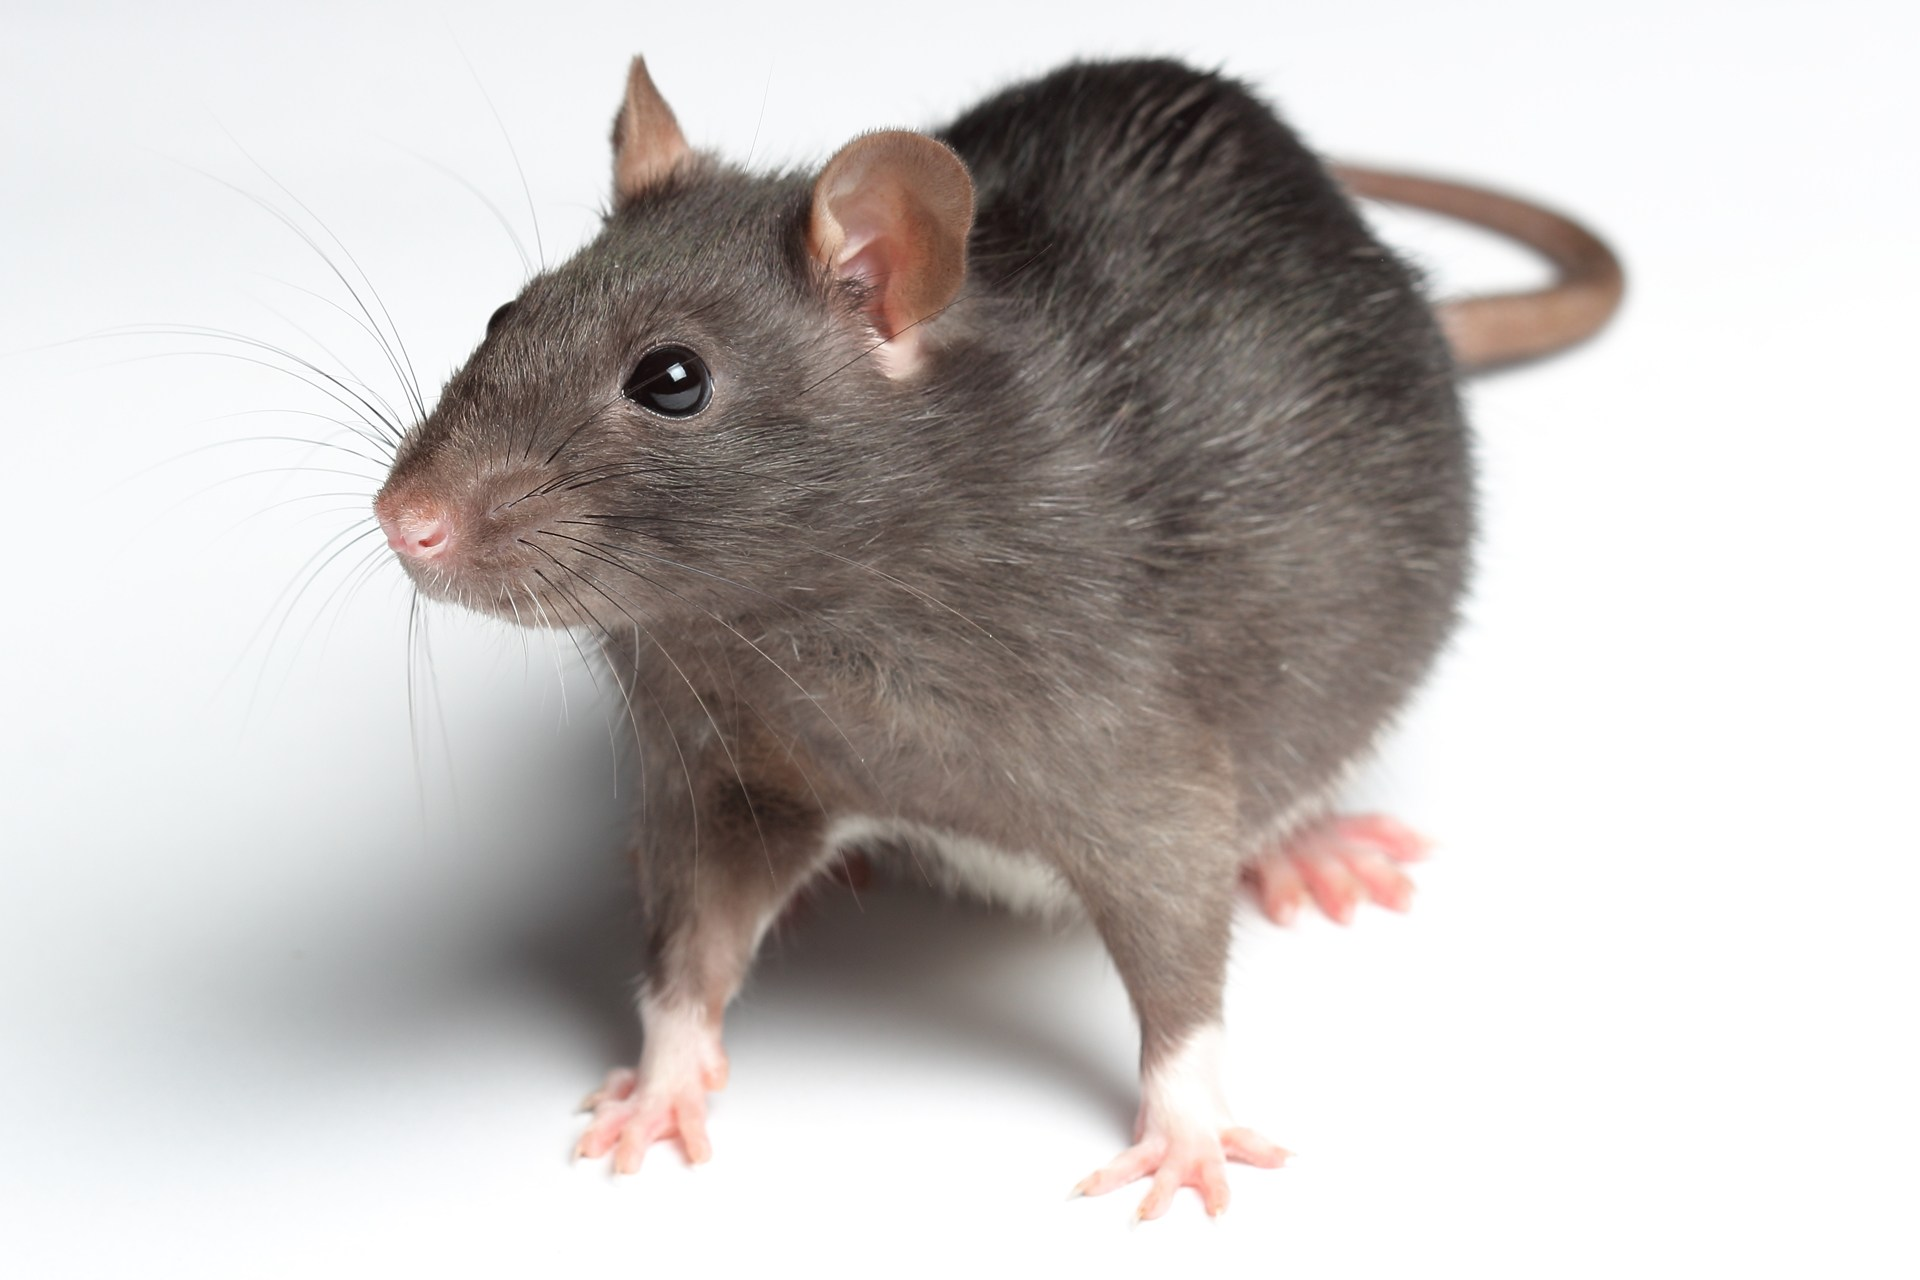 Rats and mice carry disease